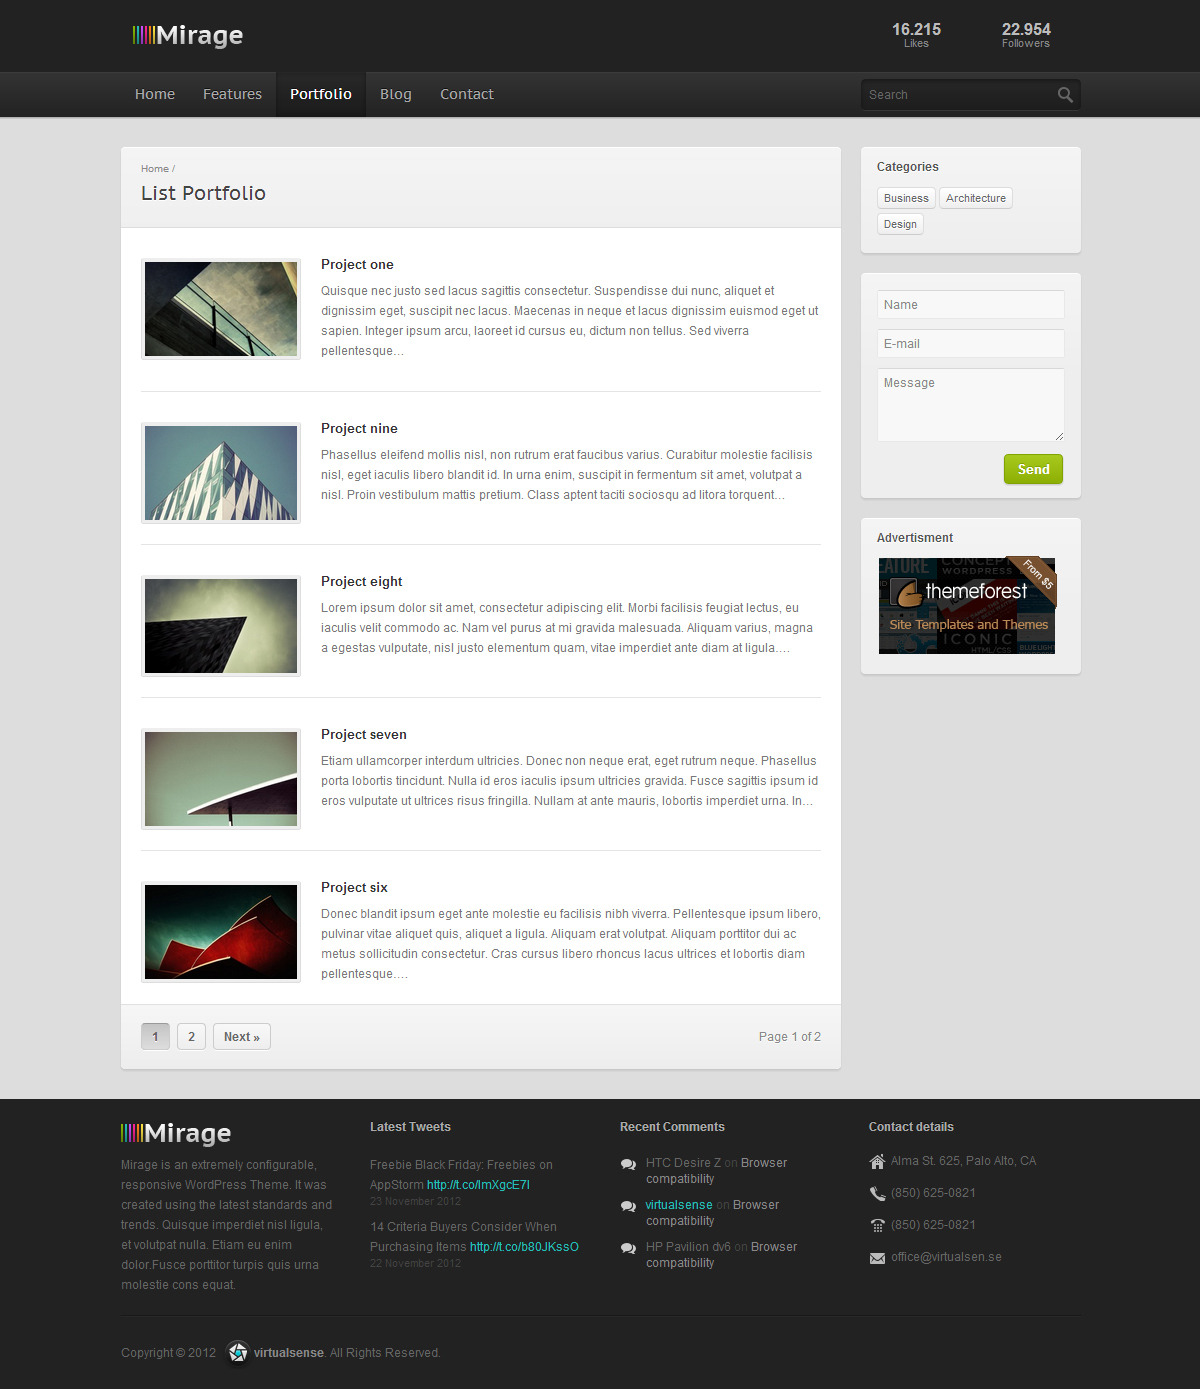 Mirage - Premium Responsive WordPress Theme